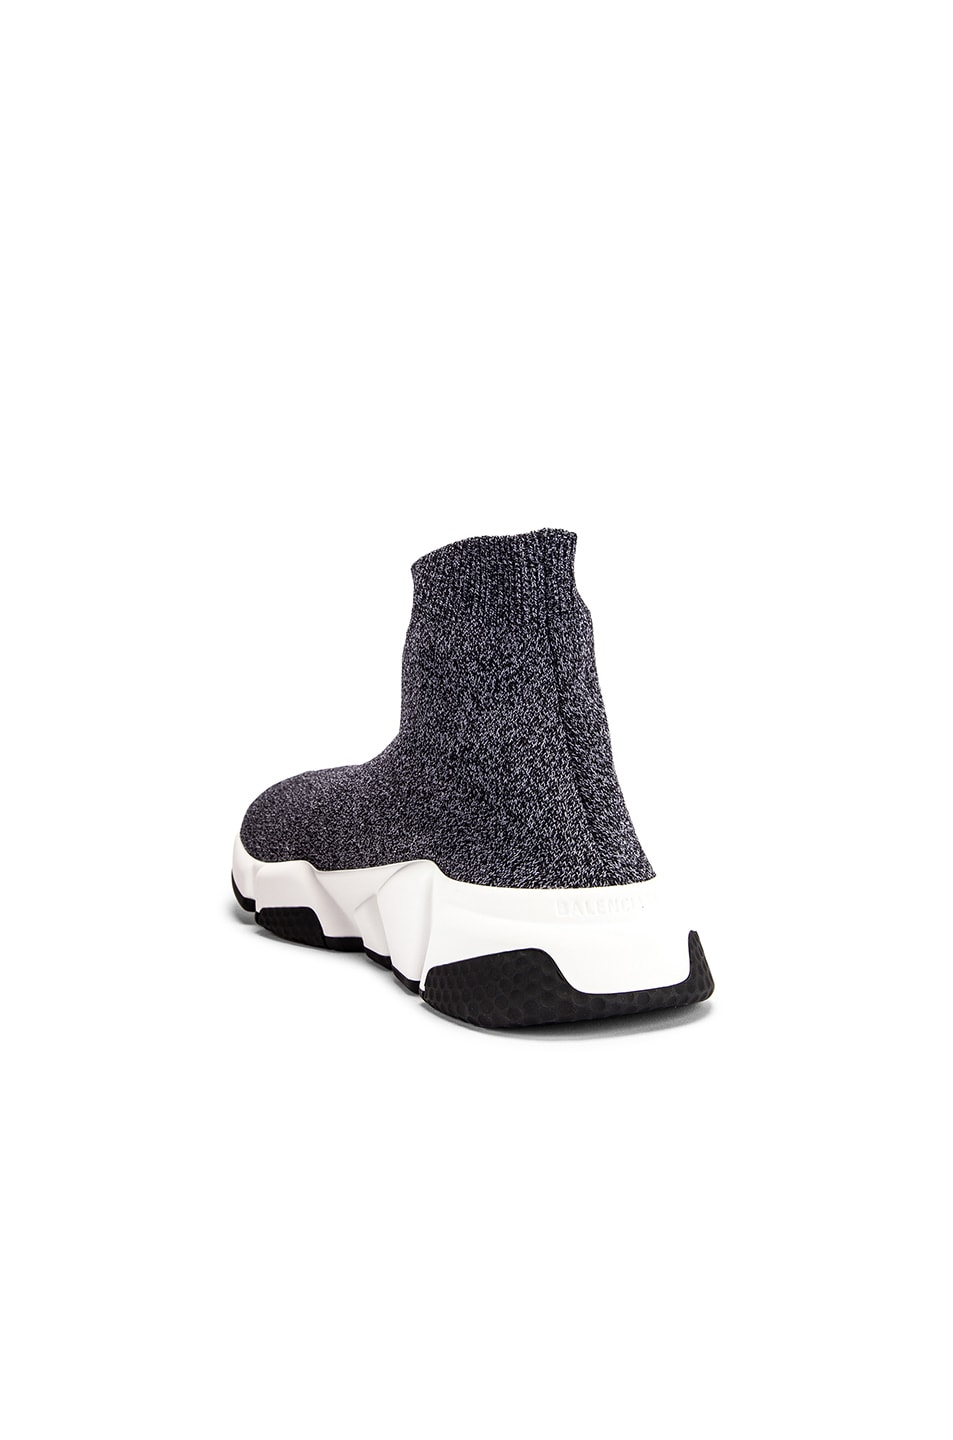 Image 3 of Balenciaga Speed Knit Sneakers in Black & White